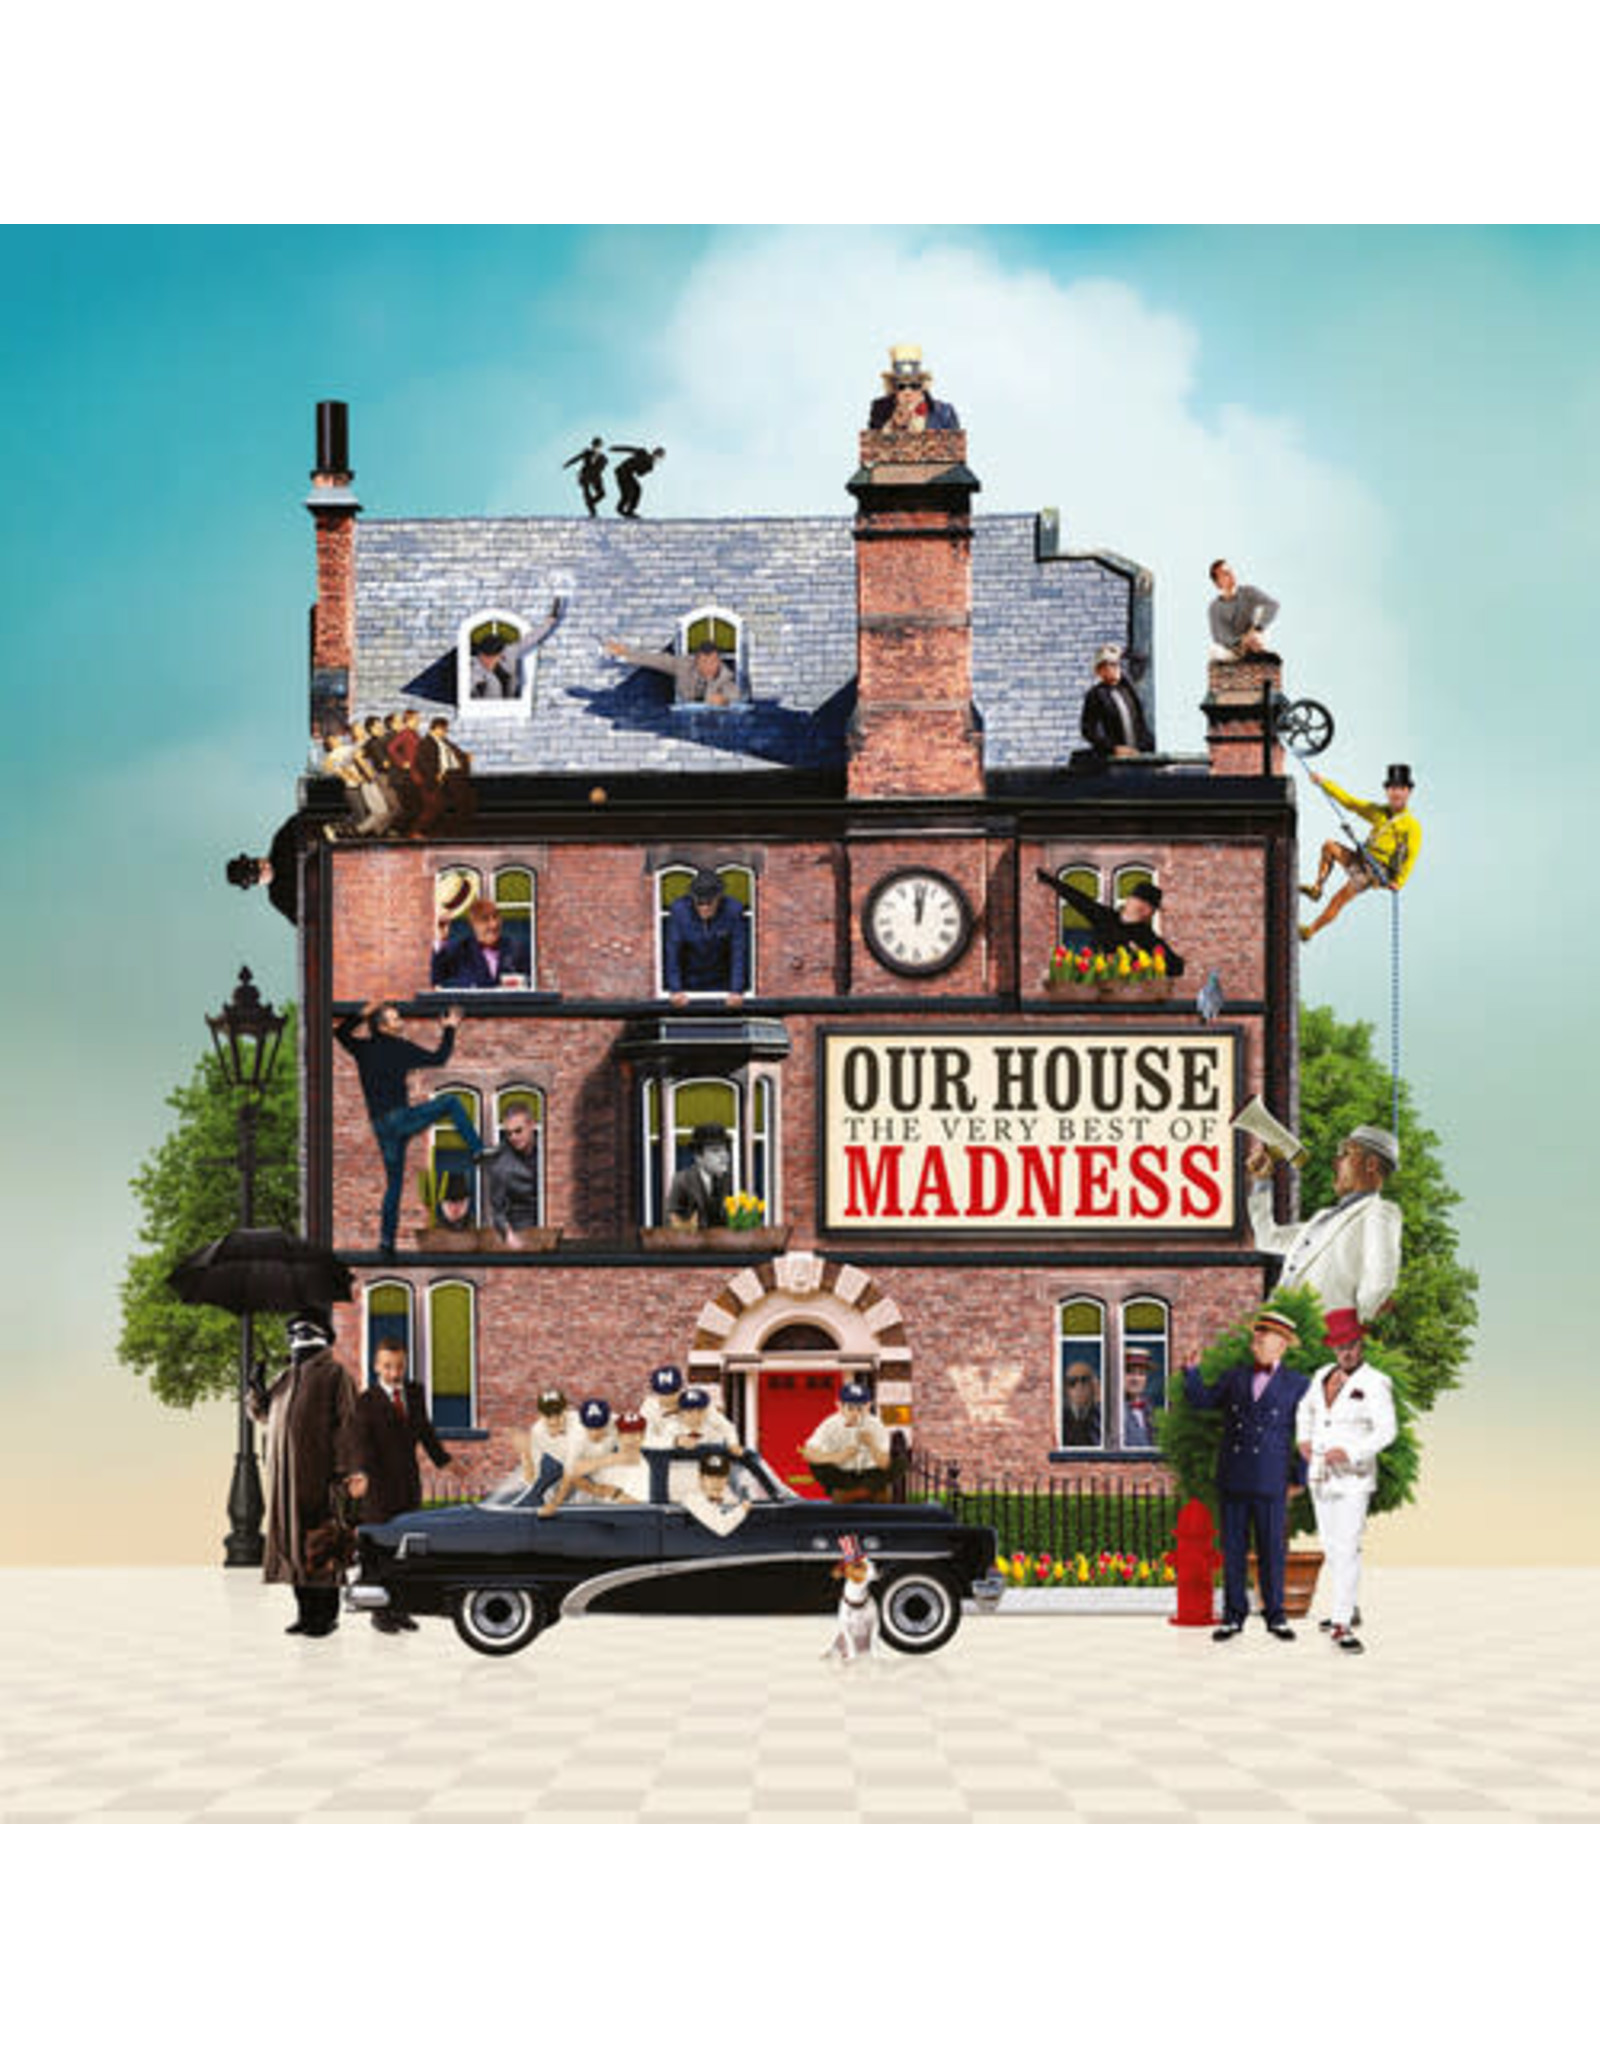 New Vinyl Madness - Our House: The Best Of Madness LP